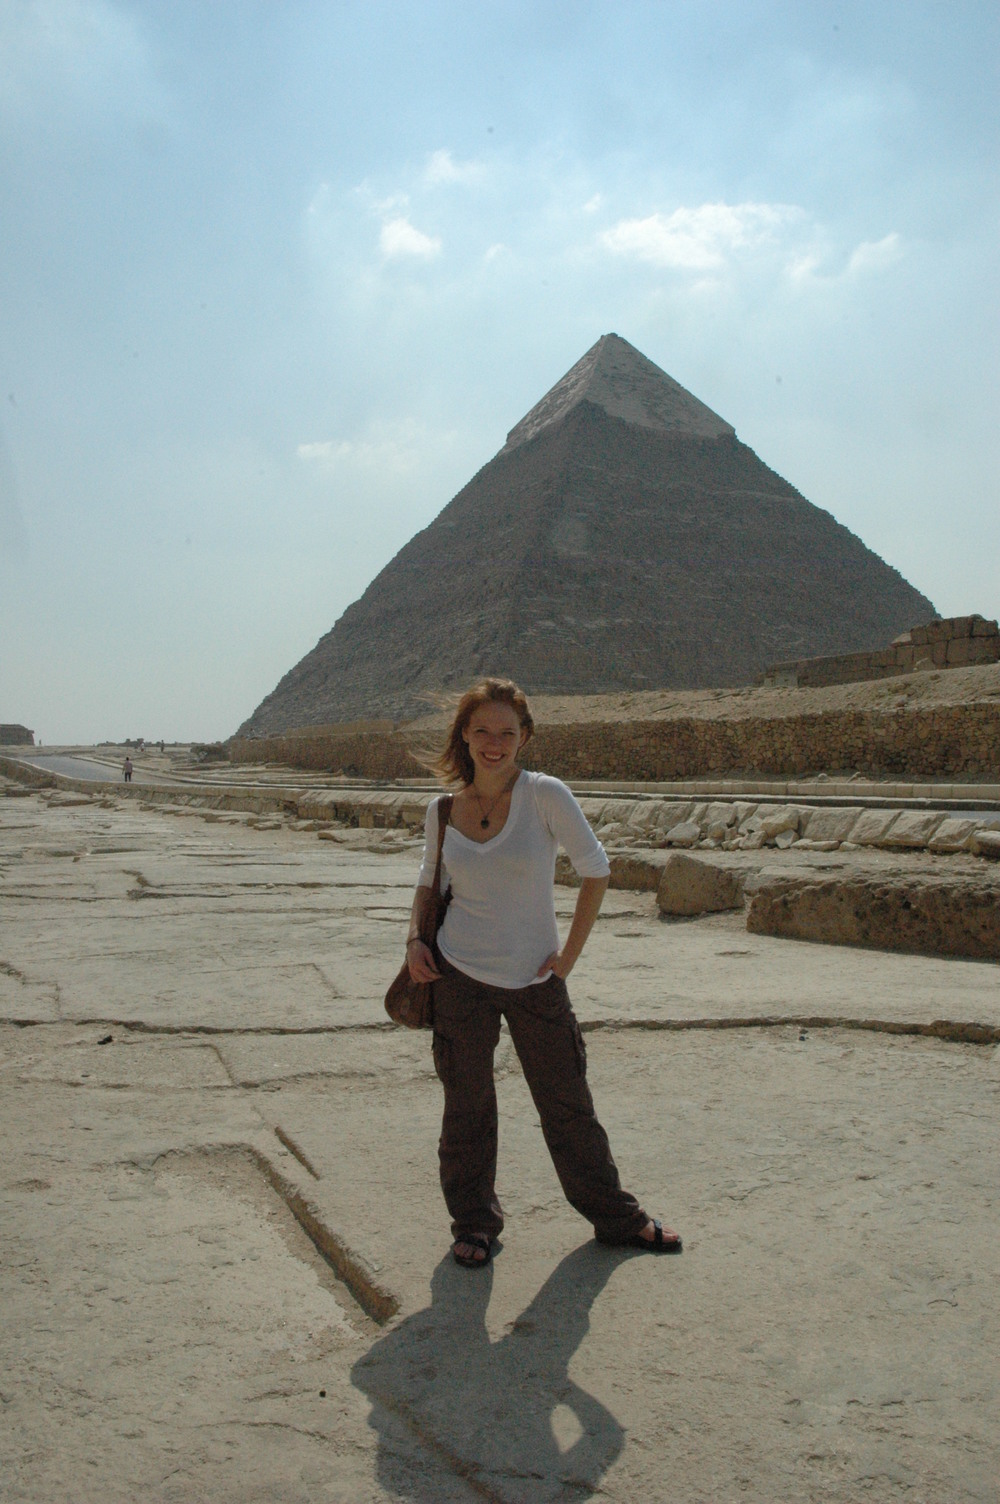 Visiting the pyramids at Giza, Egypt.